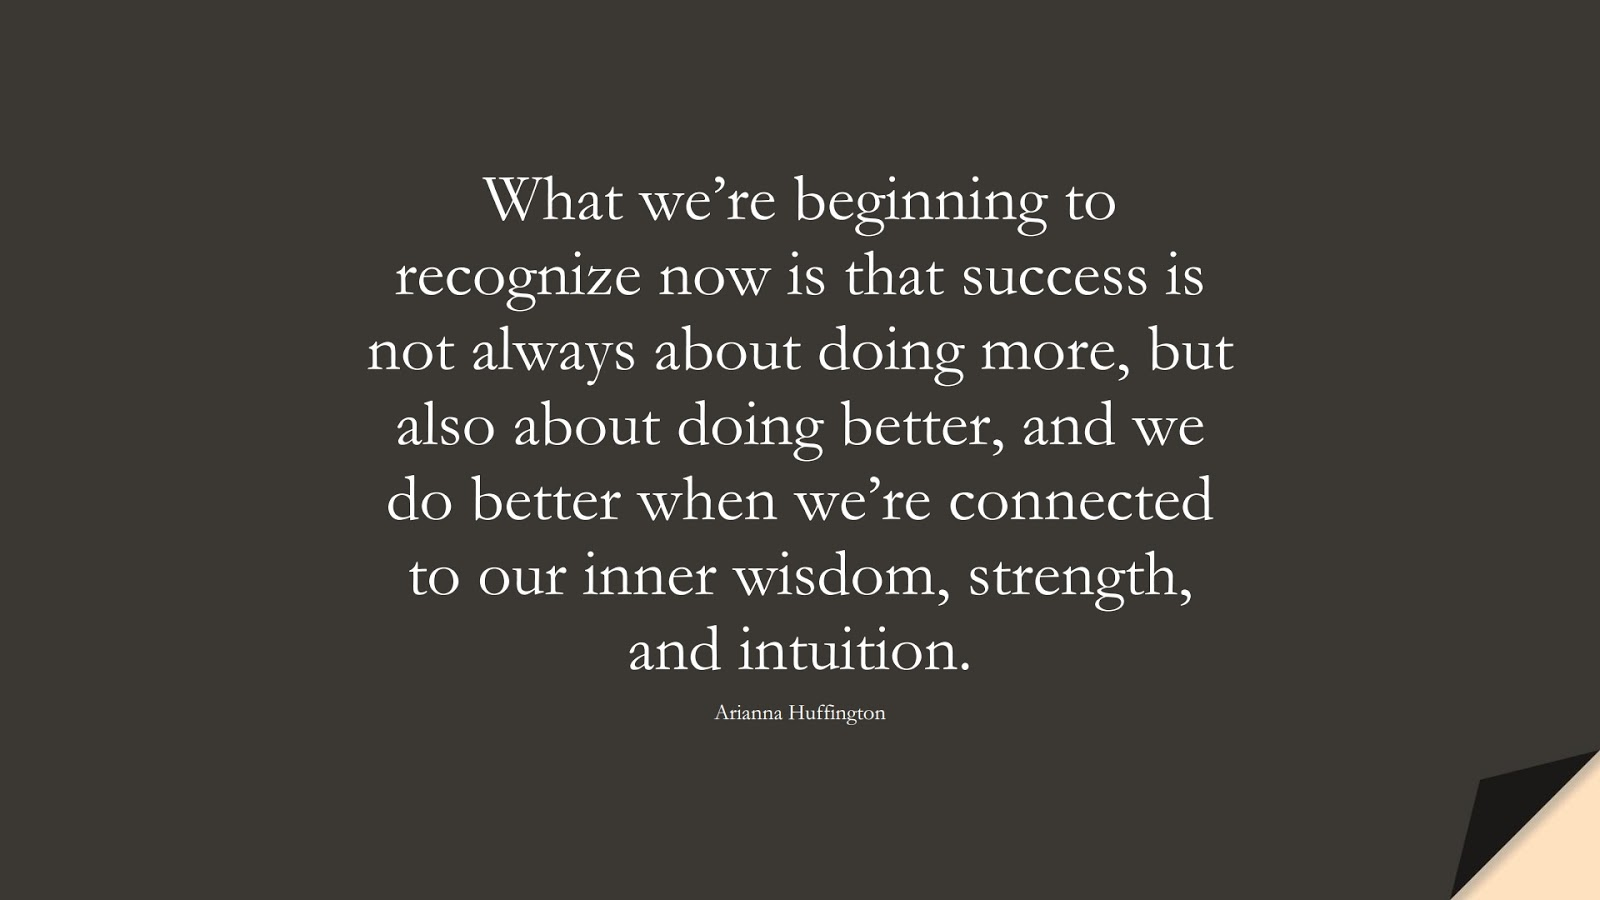 What we're beginning to recognize now is that success is not always about doing more, but also about doing better, and we do better when we're connected to our inner wisdom, strength, and intuition. (Arianna Huffington);  #SuccessQuotes